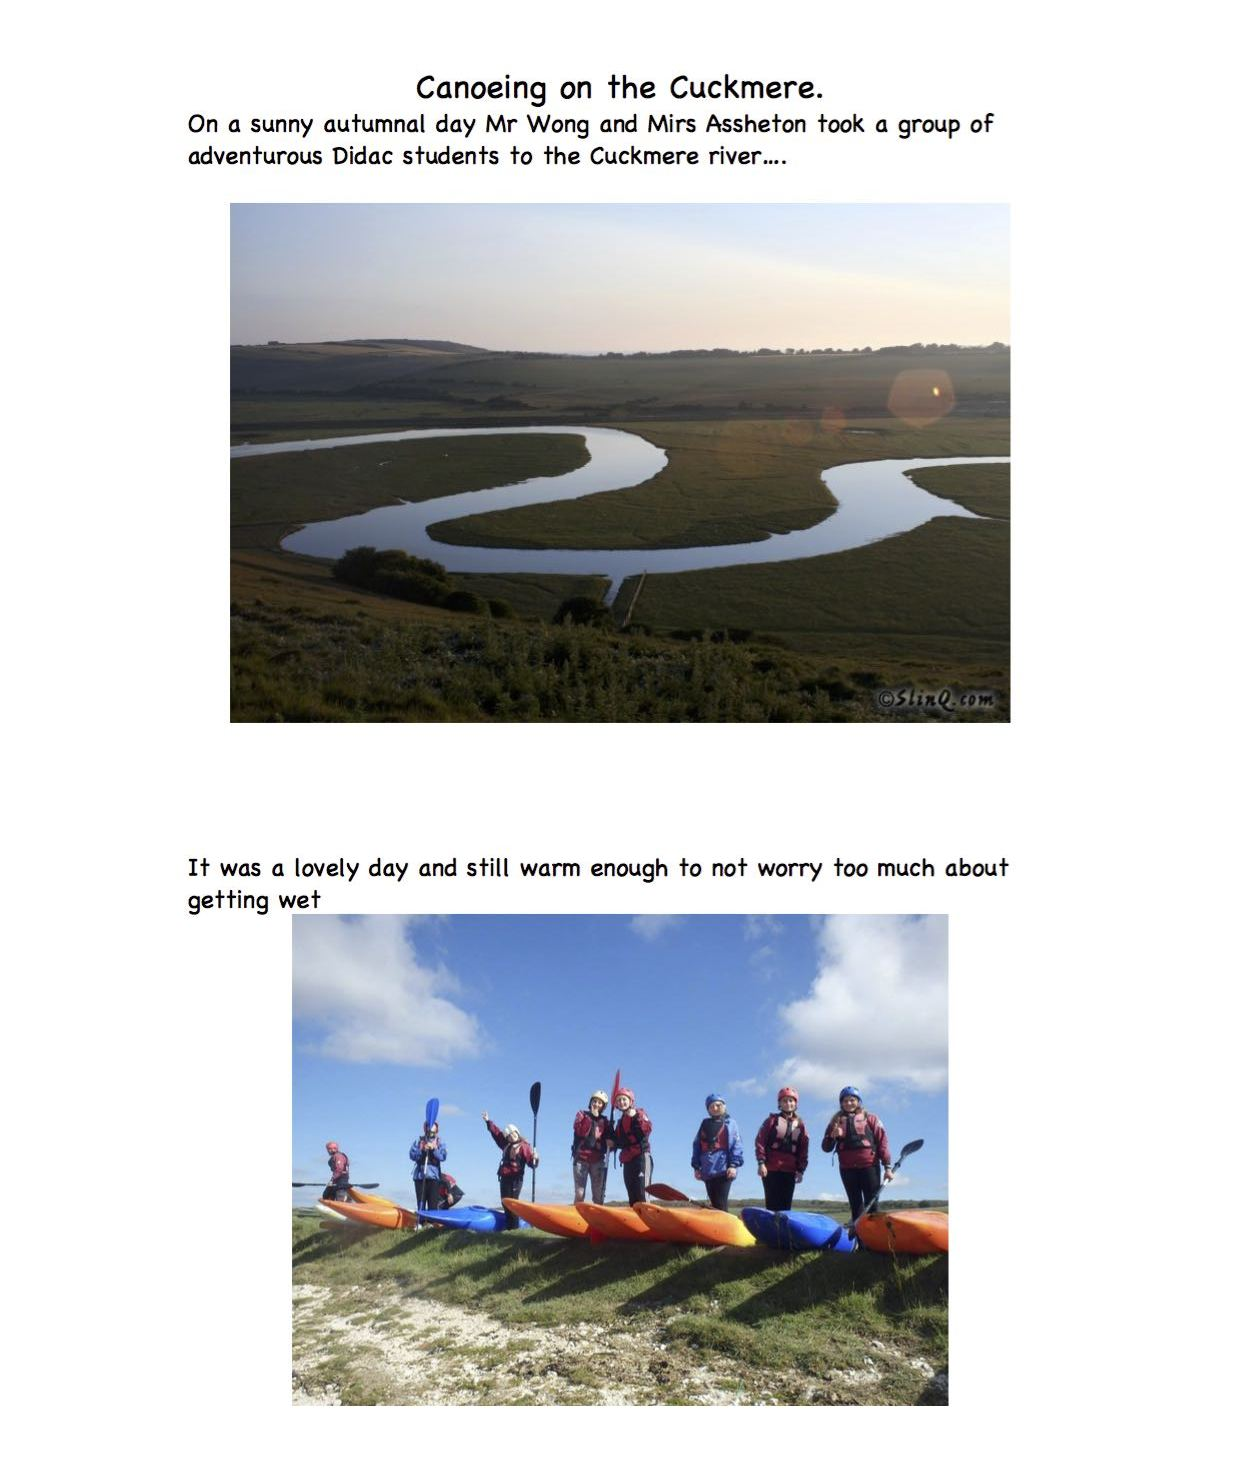 Canoeing on the Cuckmere1